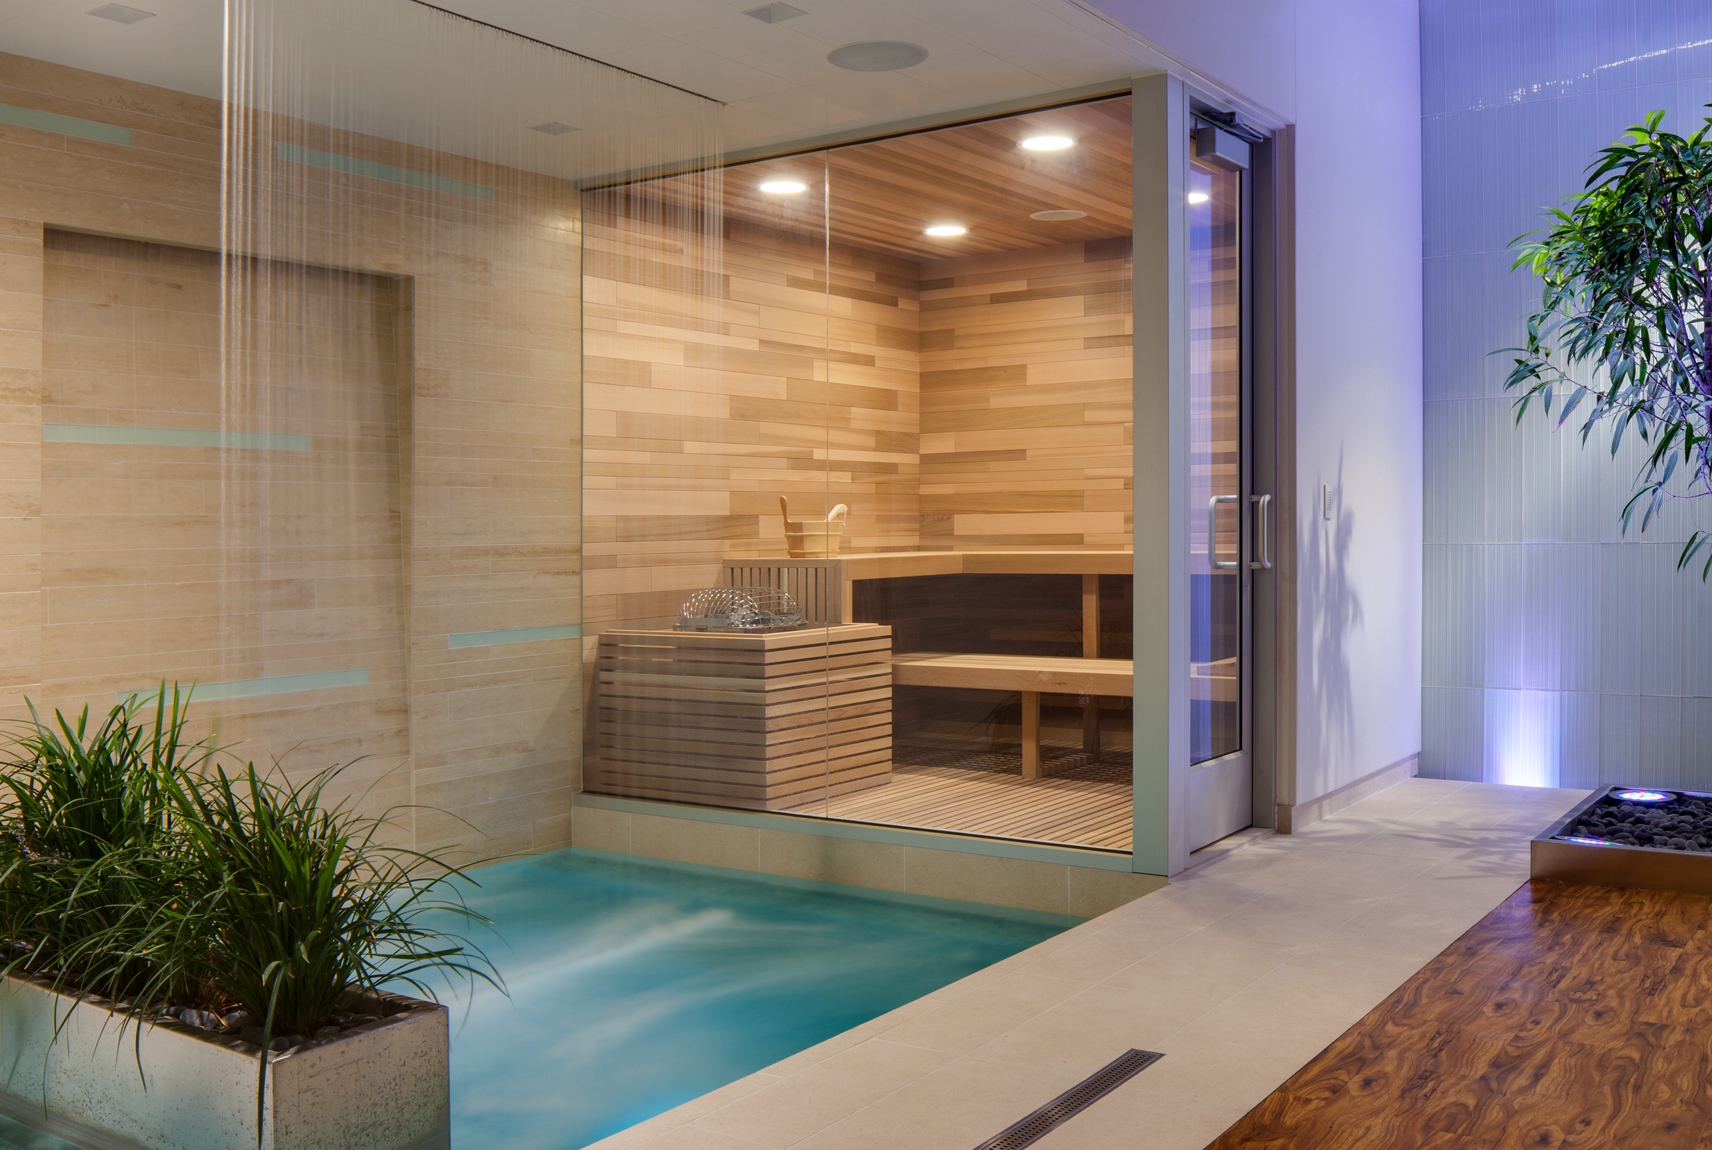 Spa room featuring cascading water, purple LED lighting and a wood clad sauna.Architectural Photography by: Paul Richer / RICHER IMAGES